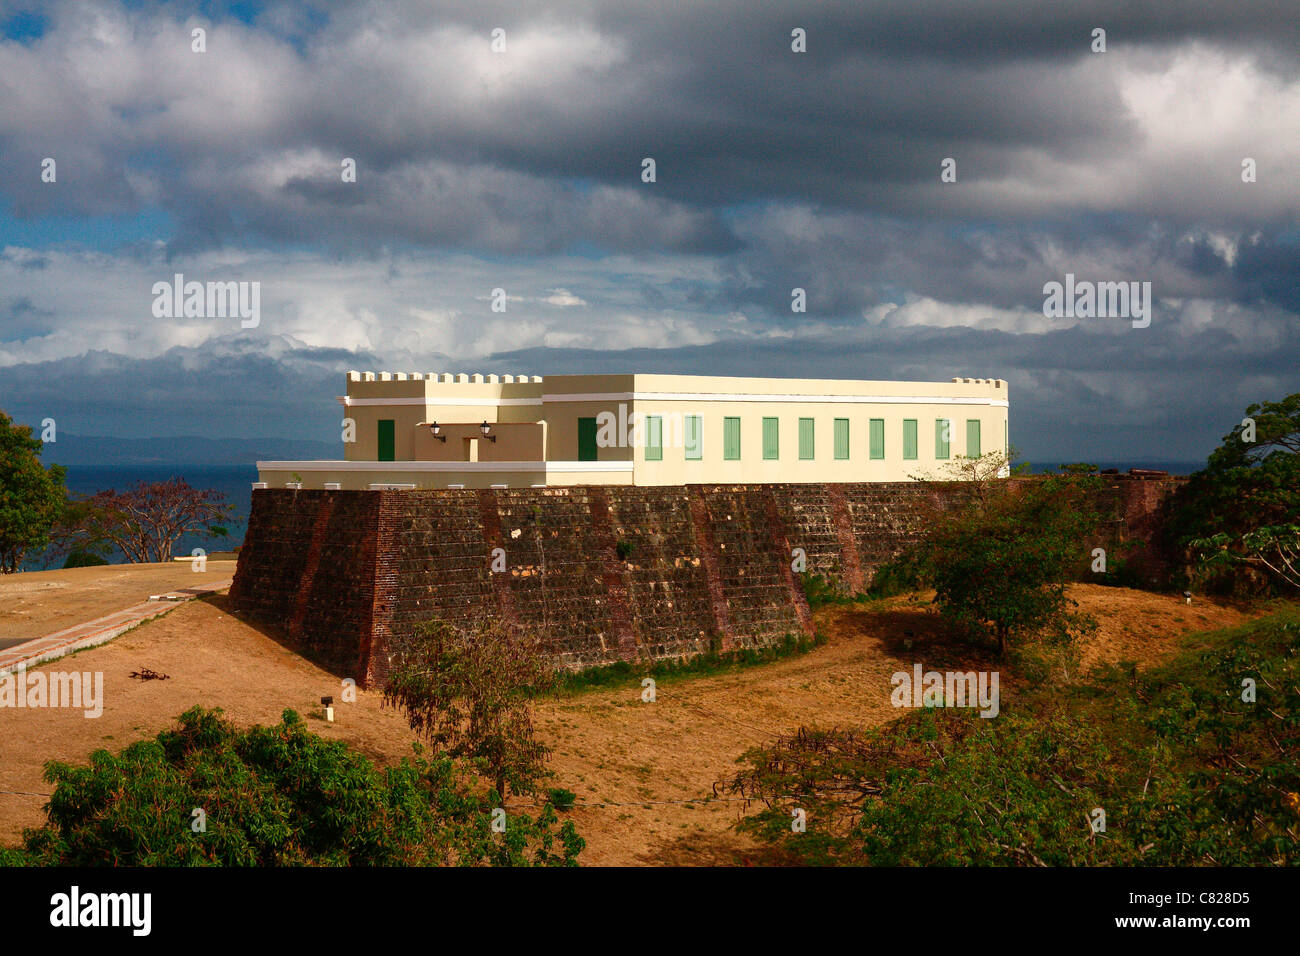 The Conde Mirasol fort of Vieques, Puerto Rico. Stock Photo